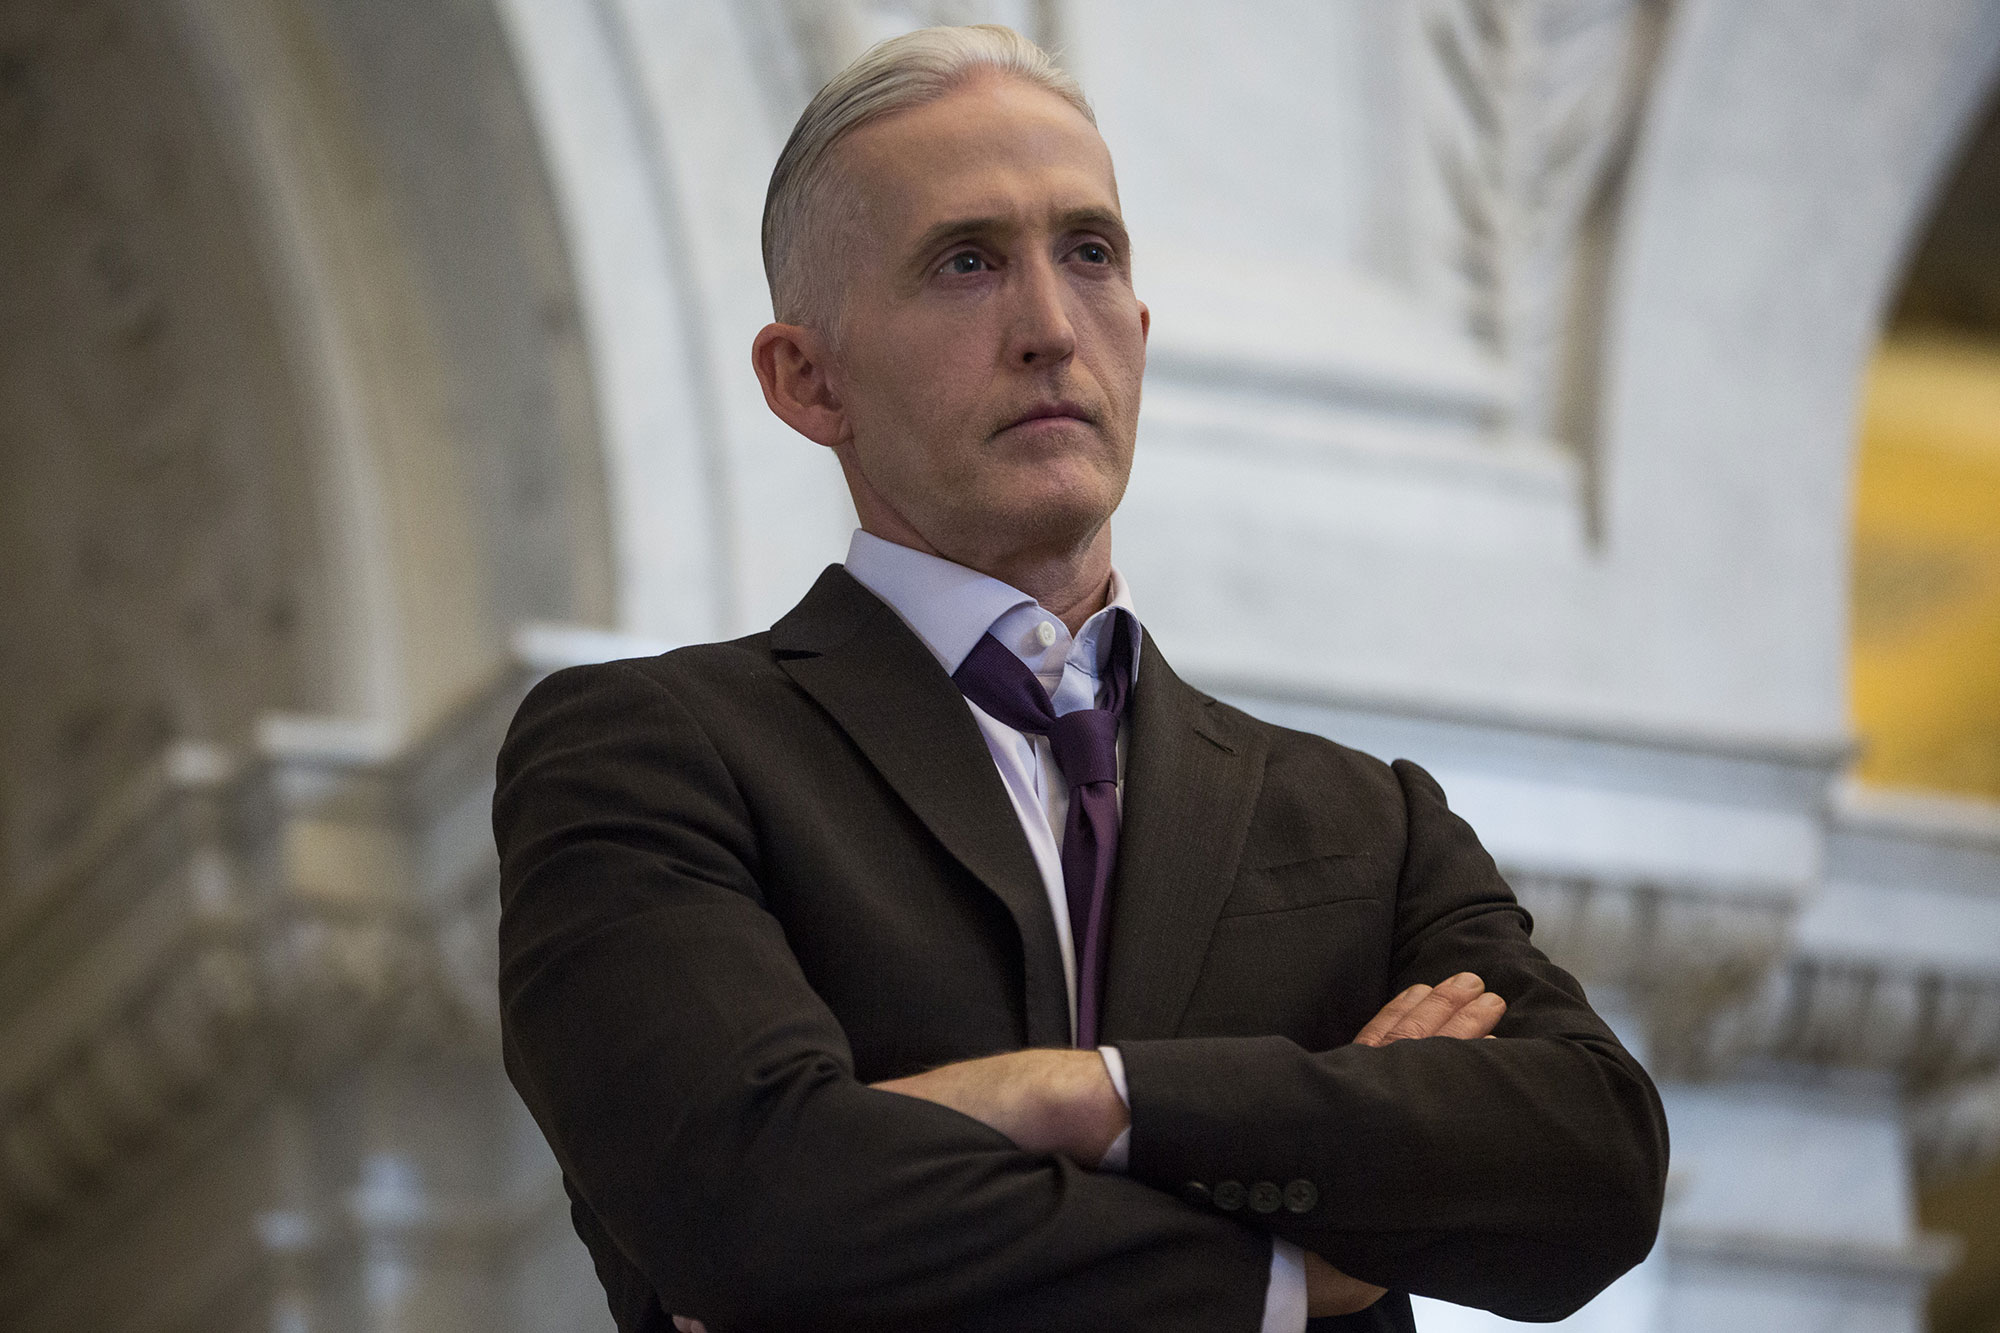 Trey Gowdy, a former congressman from South Carolina, is pictured at the Library of Congress in Washington, in December 2018.